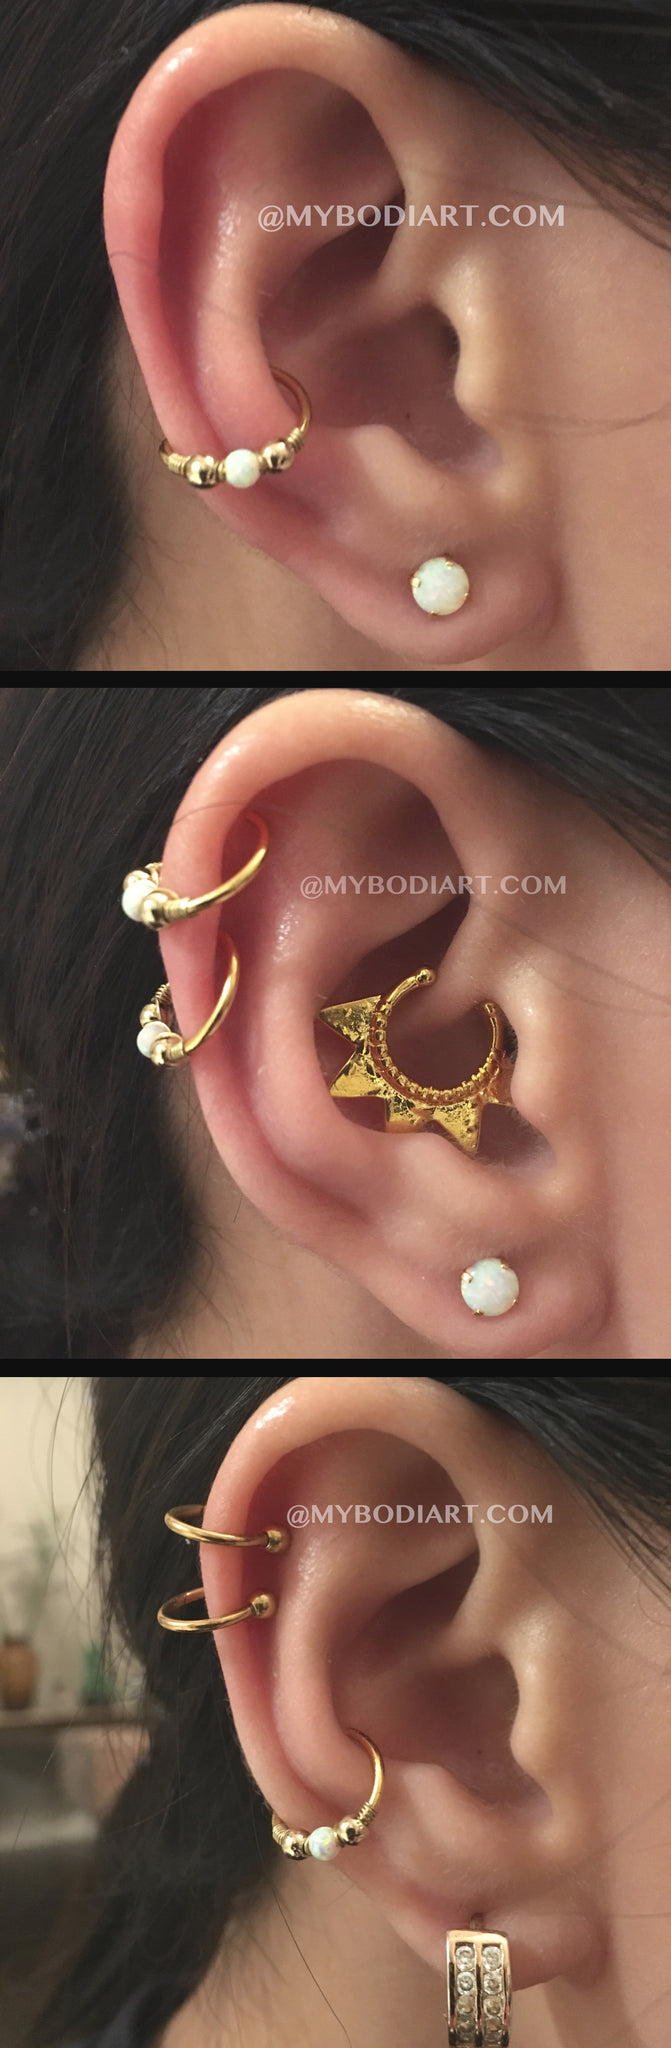 Cute Gold Ear Piercing Ideas for Teenagers - ideas para perforar orejas - cartilage conch daith rook ear lobe helix tragus earring ring hoop stud jewelry jewellery - www.MyBodiArt.com